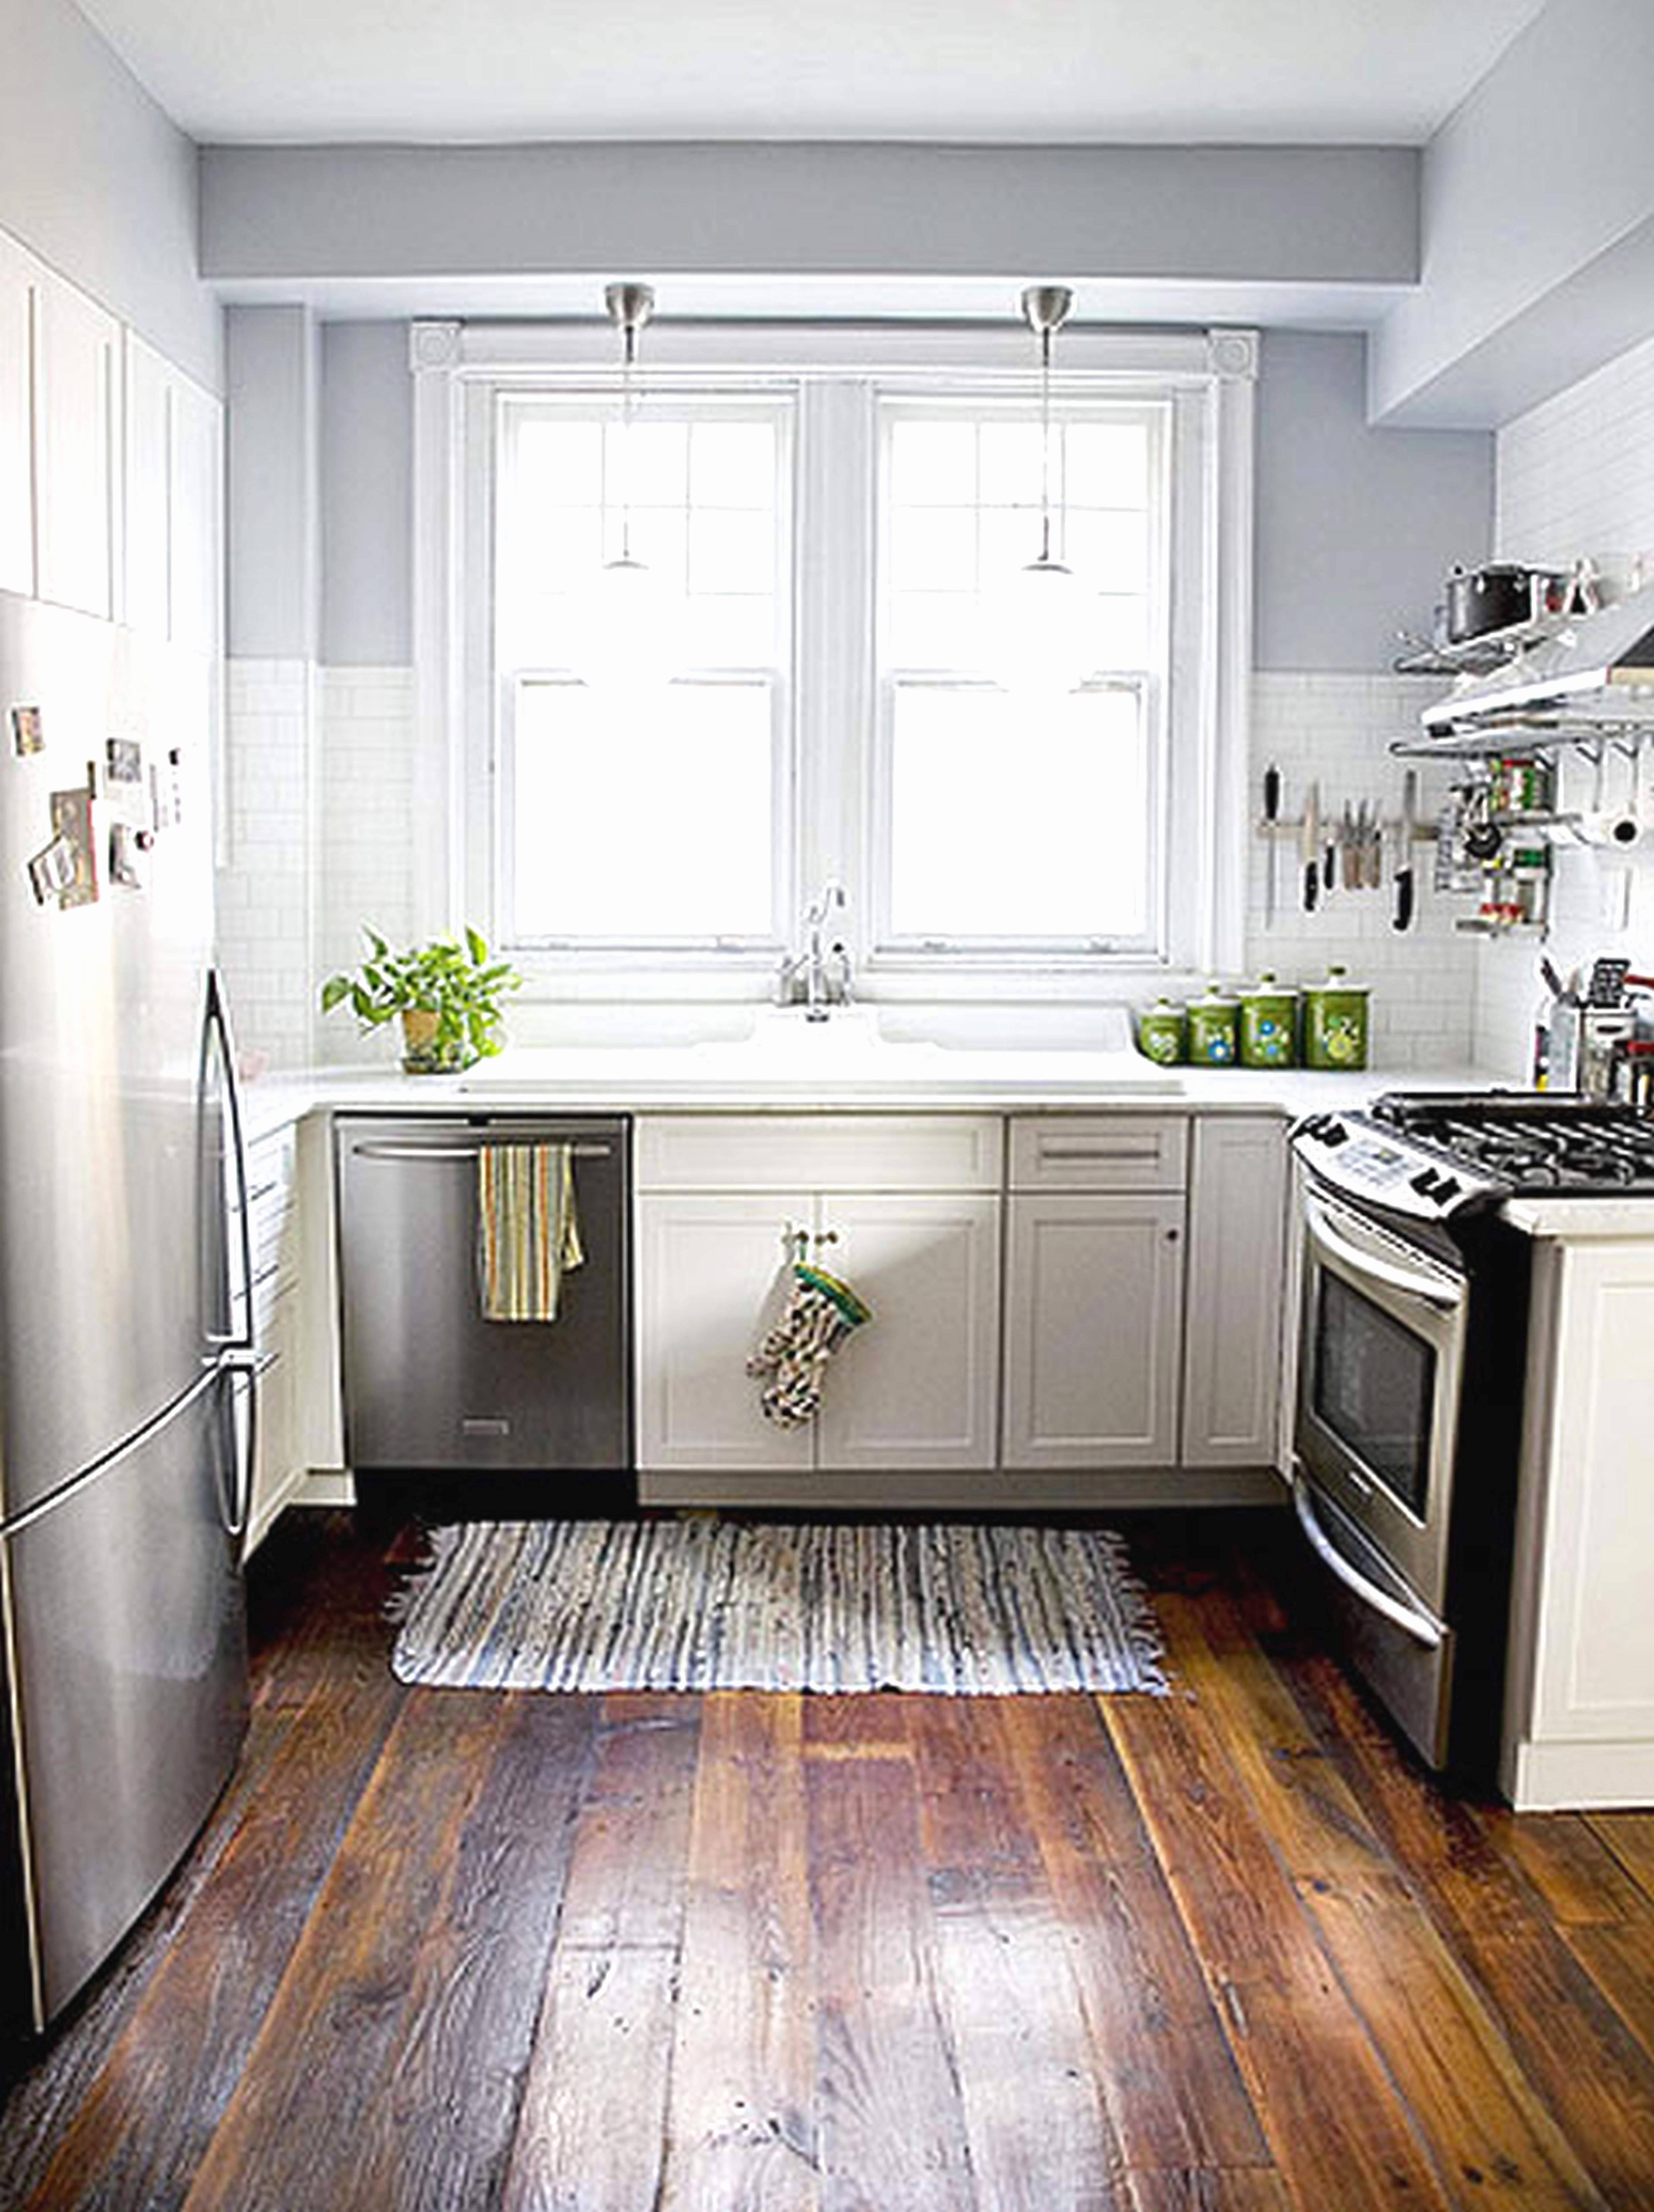 Kitchen rugs in full size of the kitchen space: Cow kitchen carpet inspiring 50 top kitchen area UYVRIIN